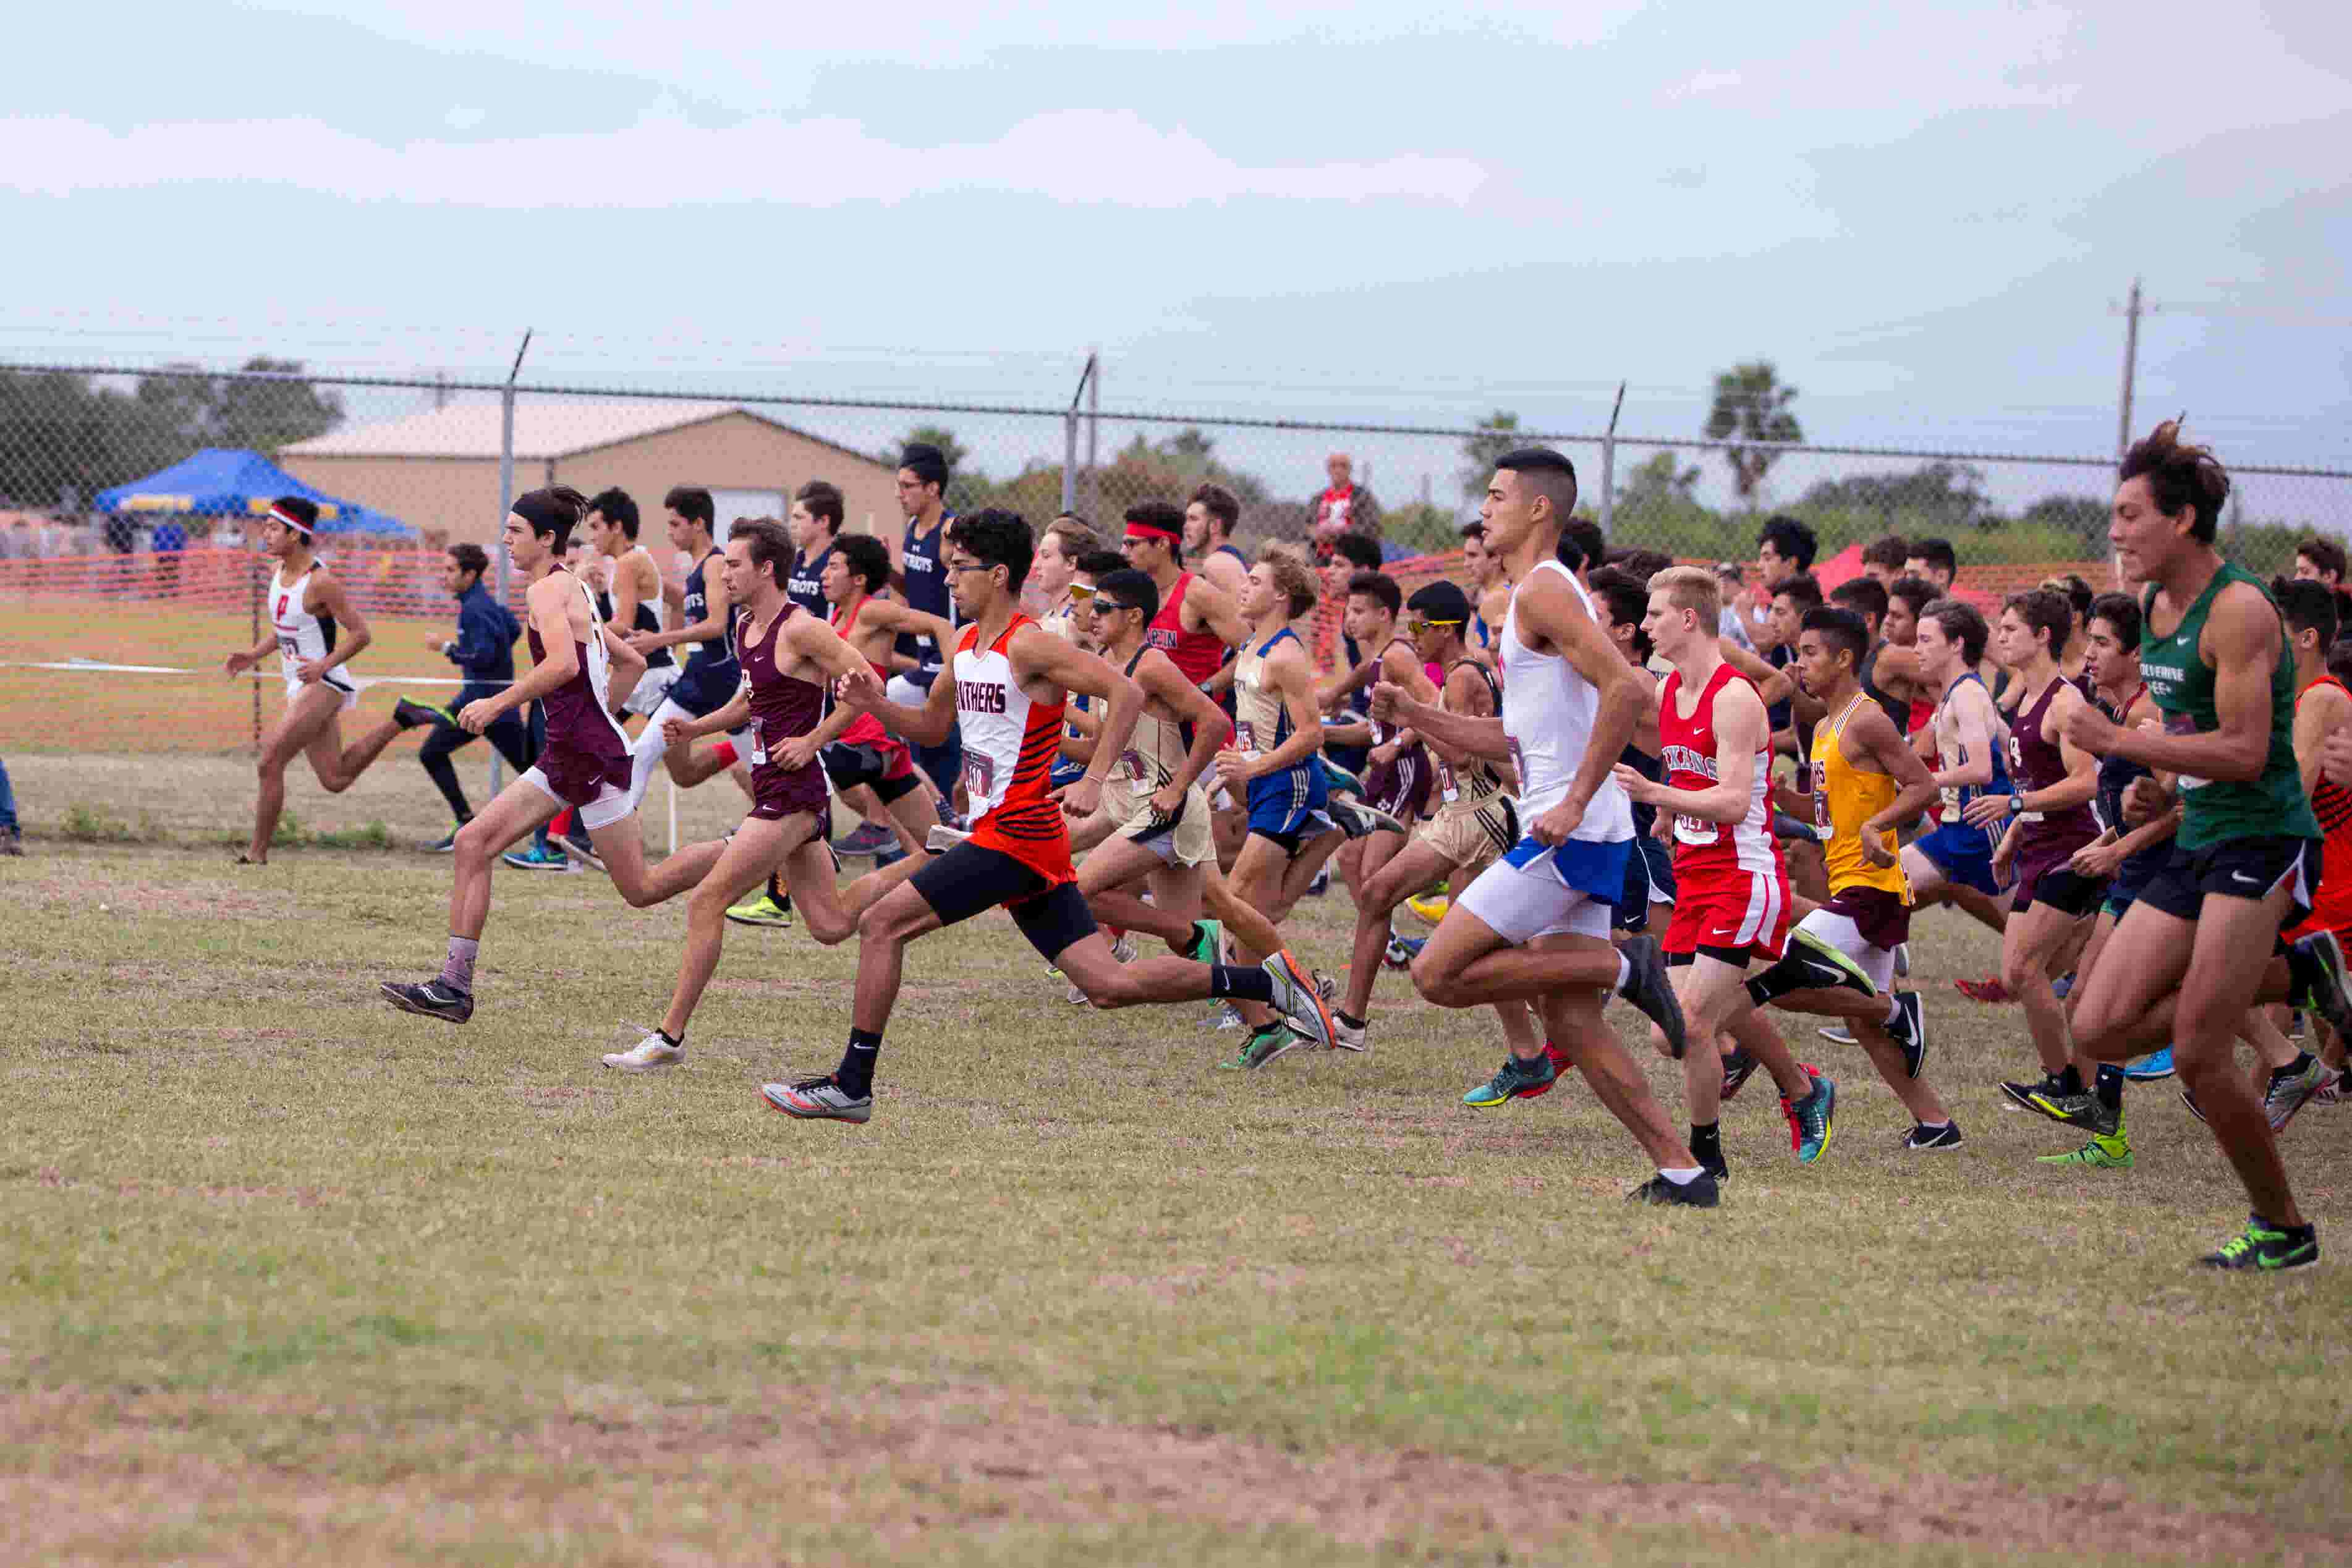 A Look At Some Of The UIL State Qualifiers From Region IV Cross Country Meet